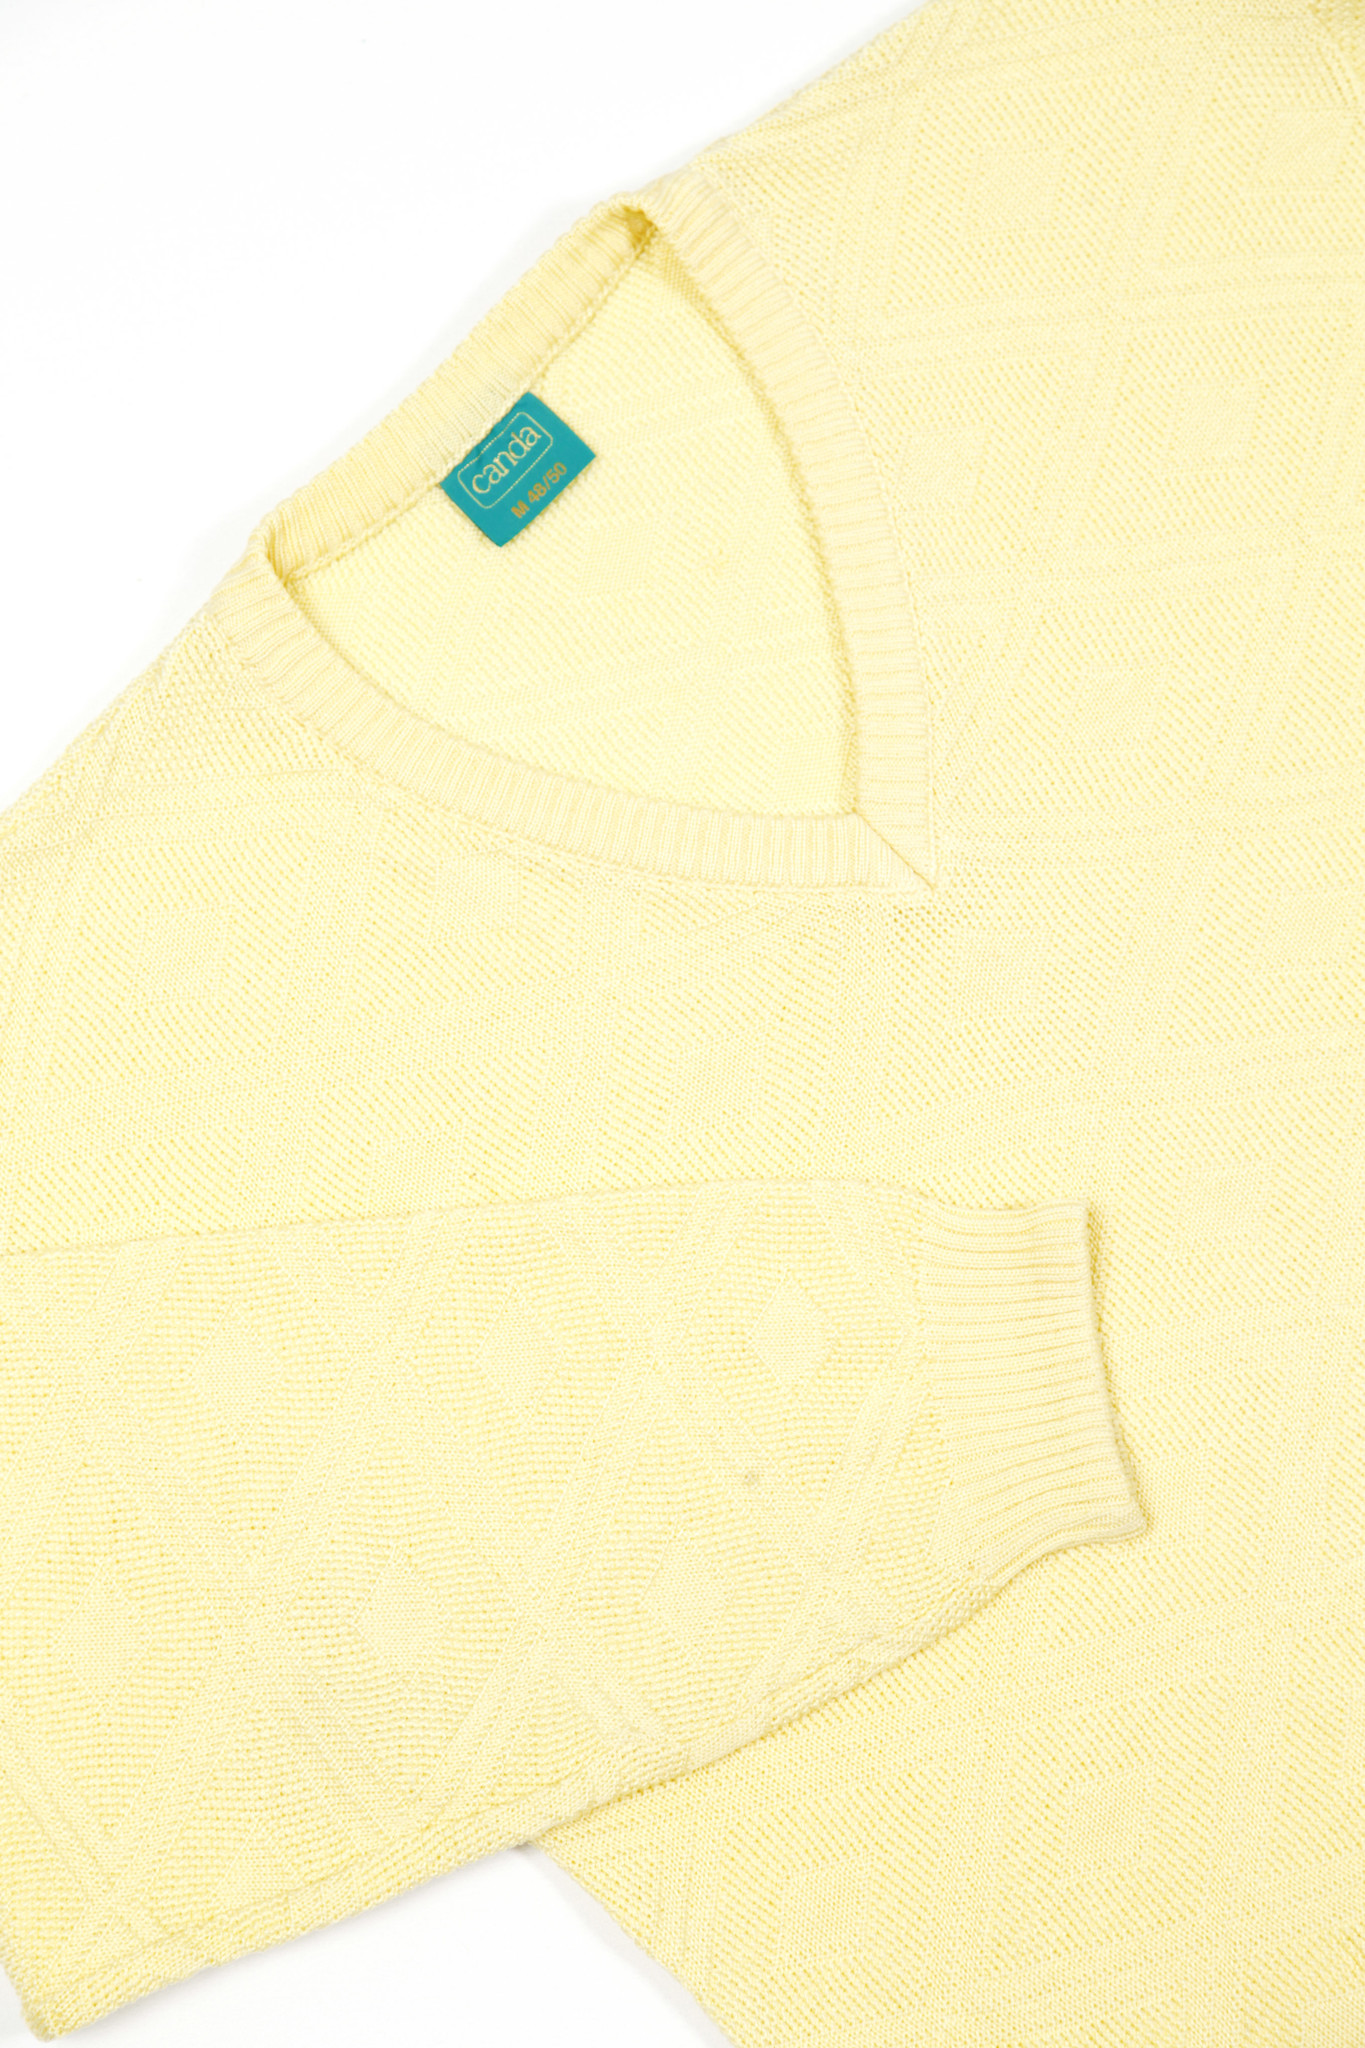 Structured yellow knit jumper